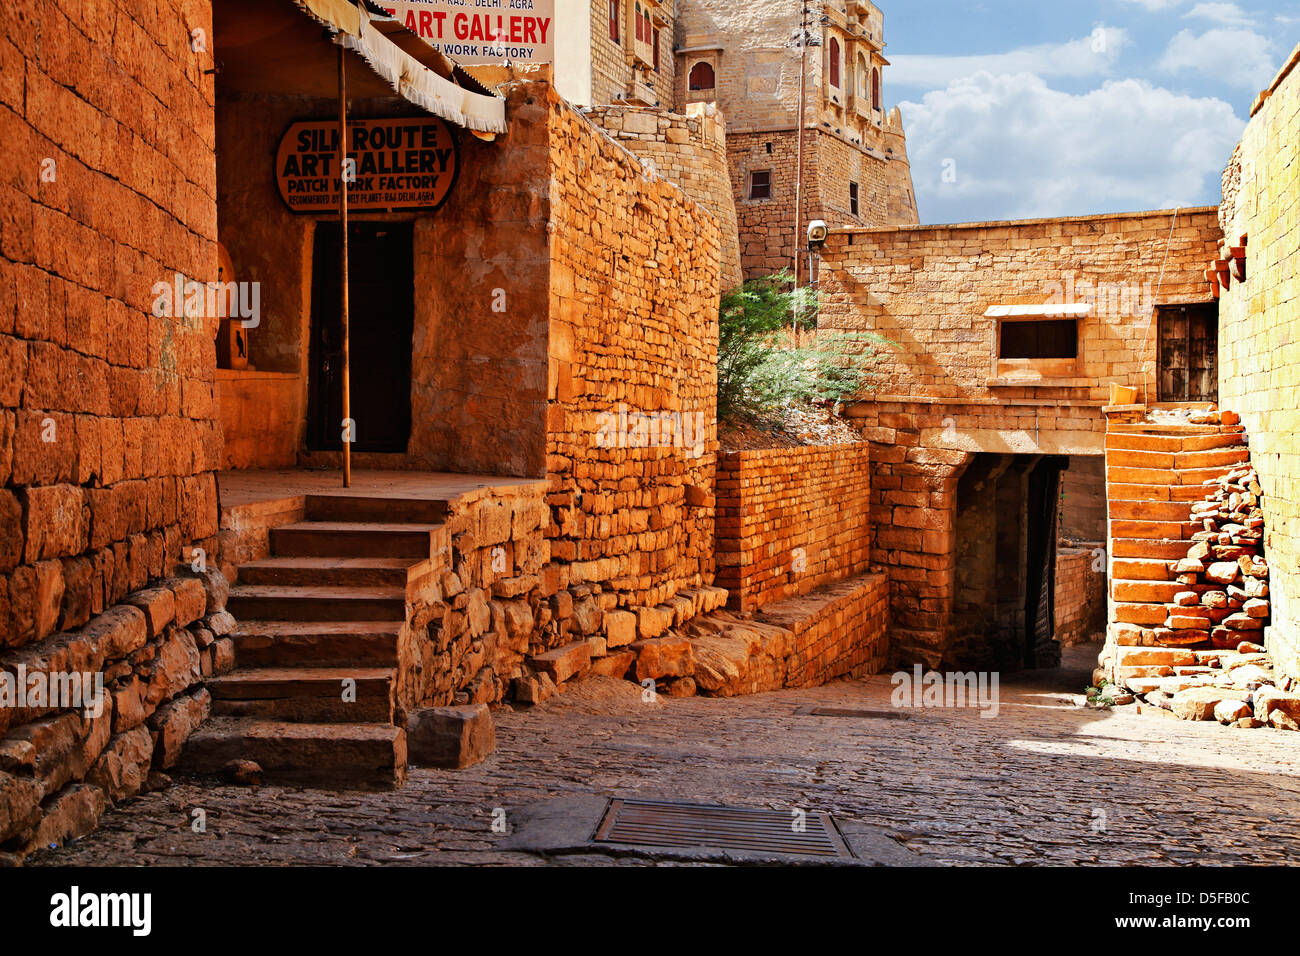 Traditional buildings in Jaisalmer, Rajasthan, India - Stock Image